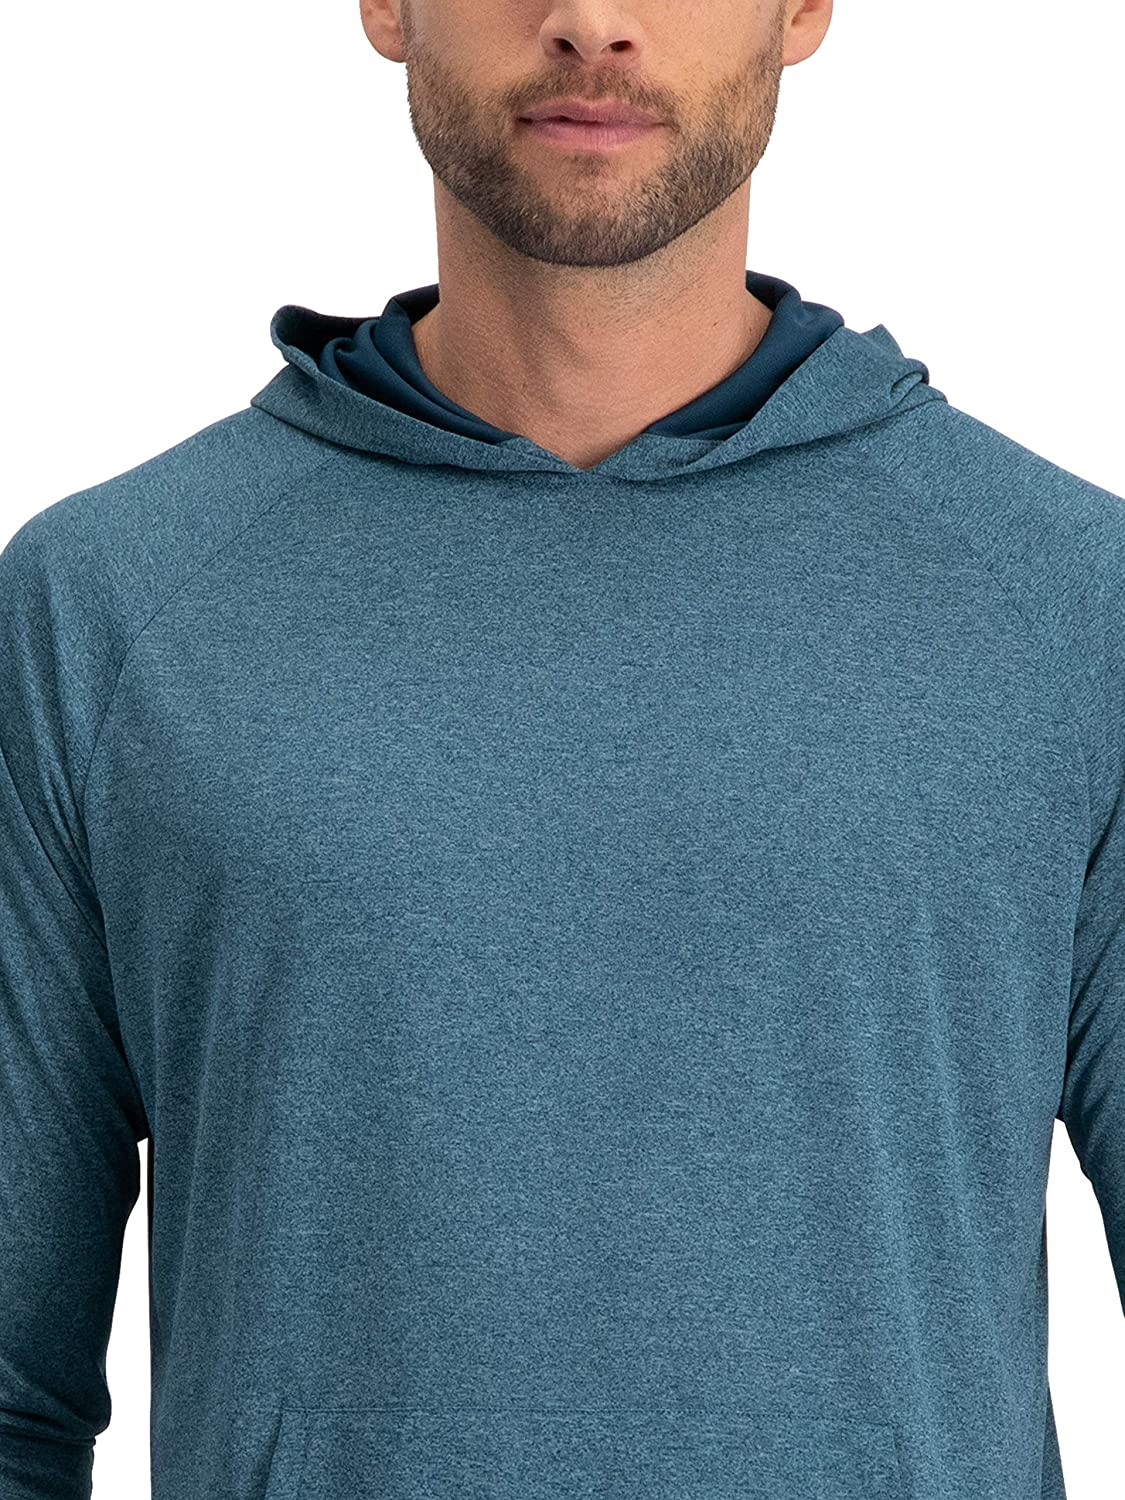 Dry Fit Workout Hoodies for Gym and Running 3//4 Sleeve Lightweight Hoodie Men